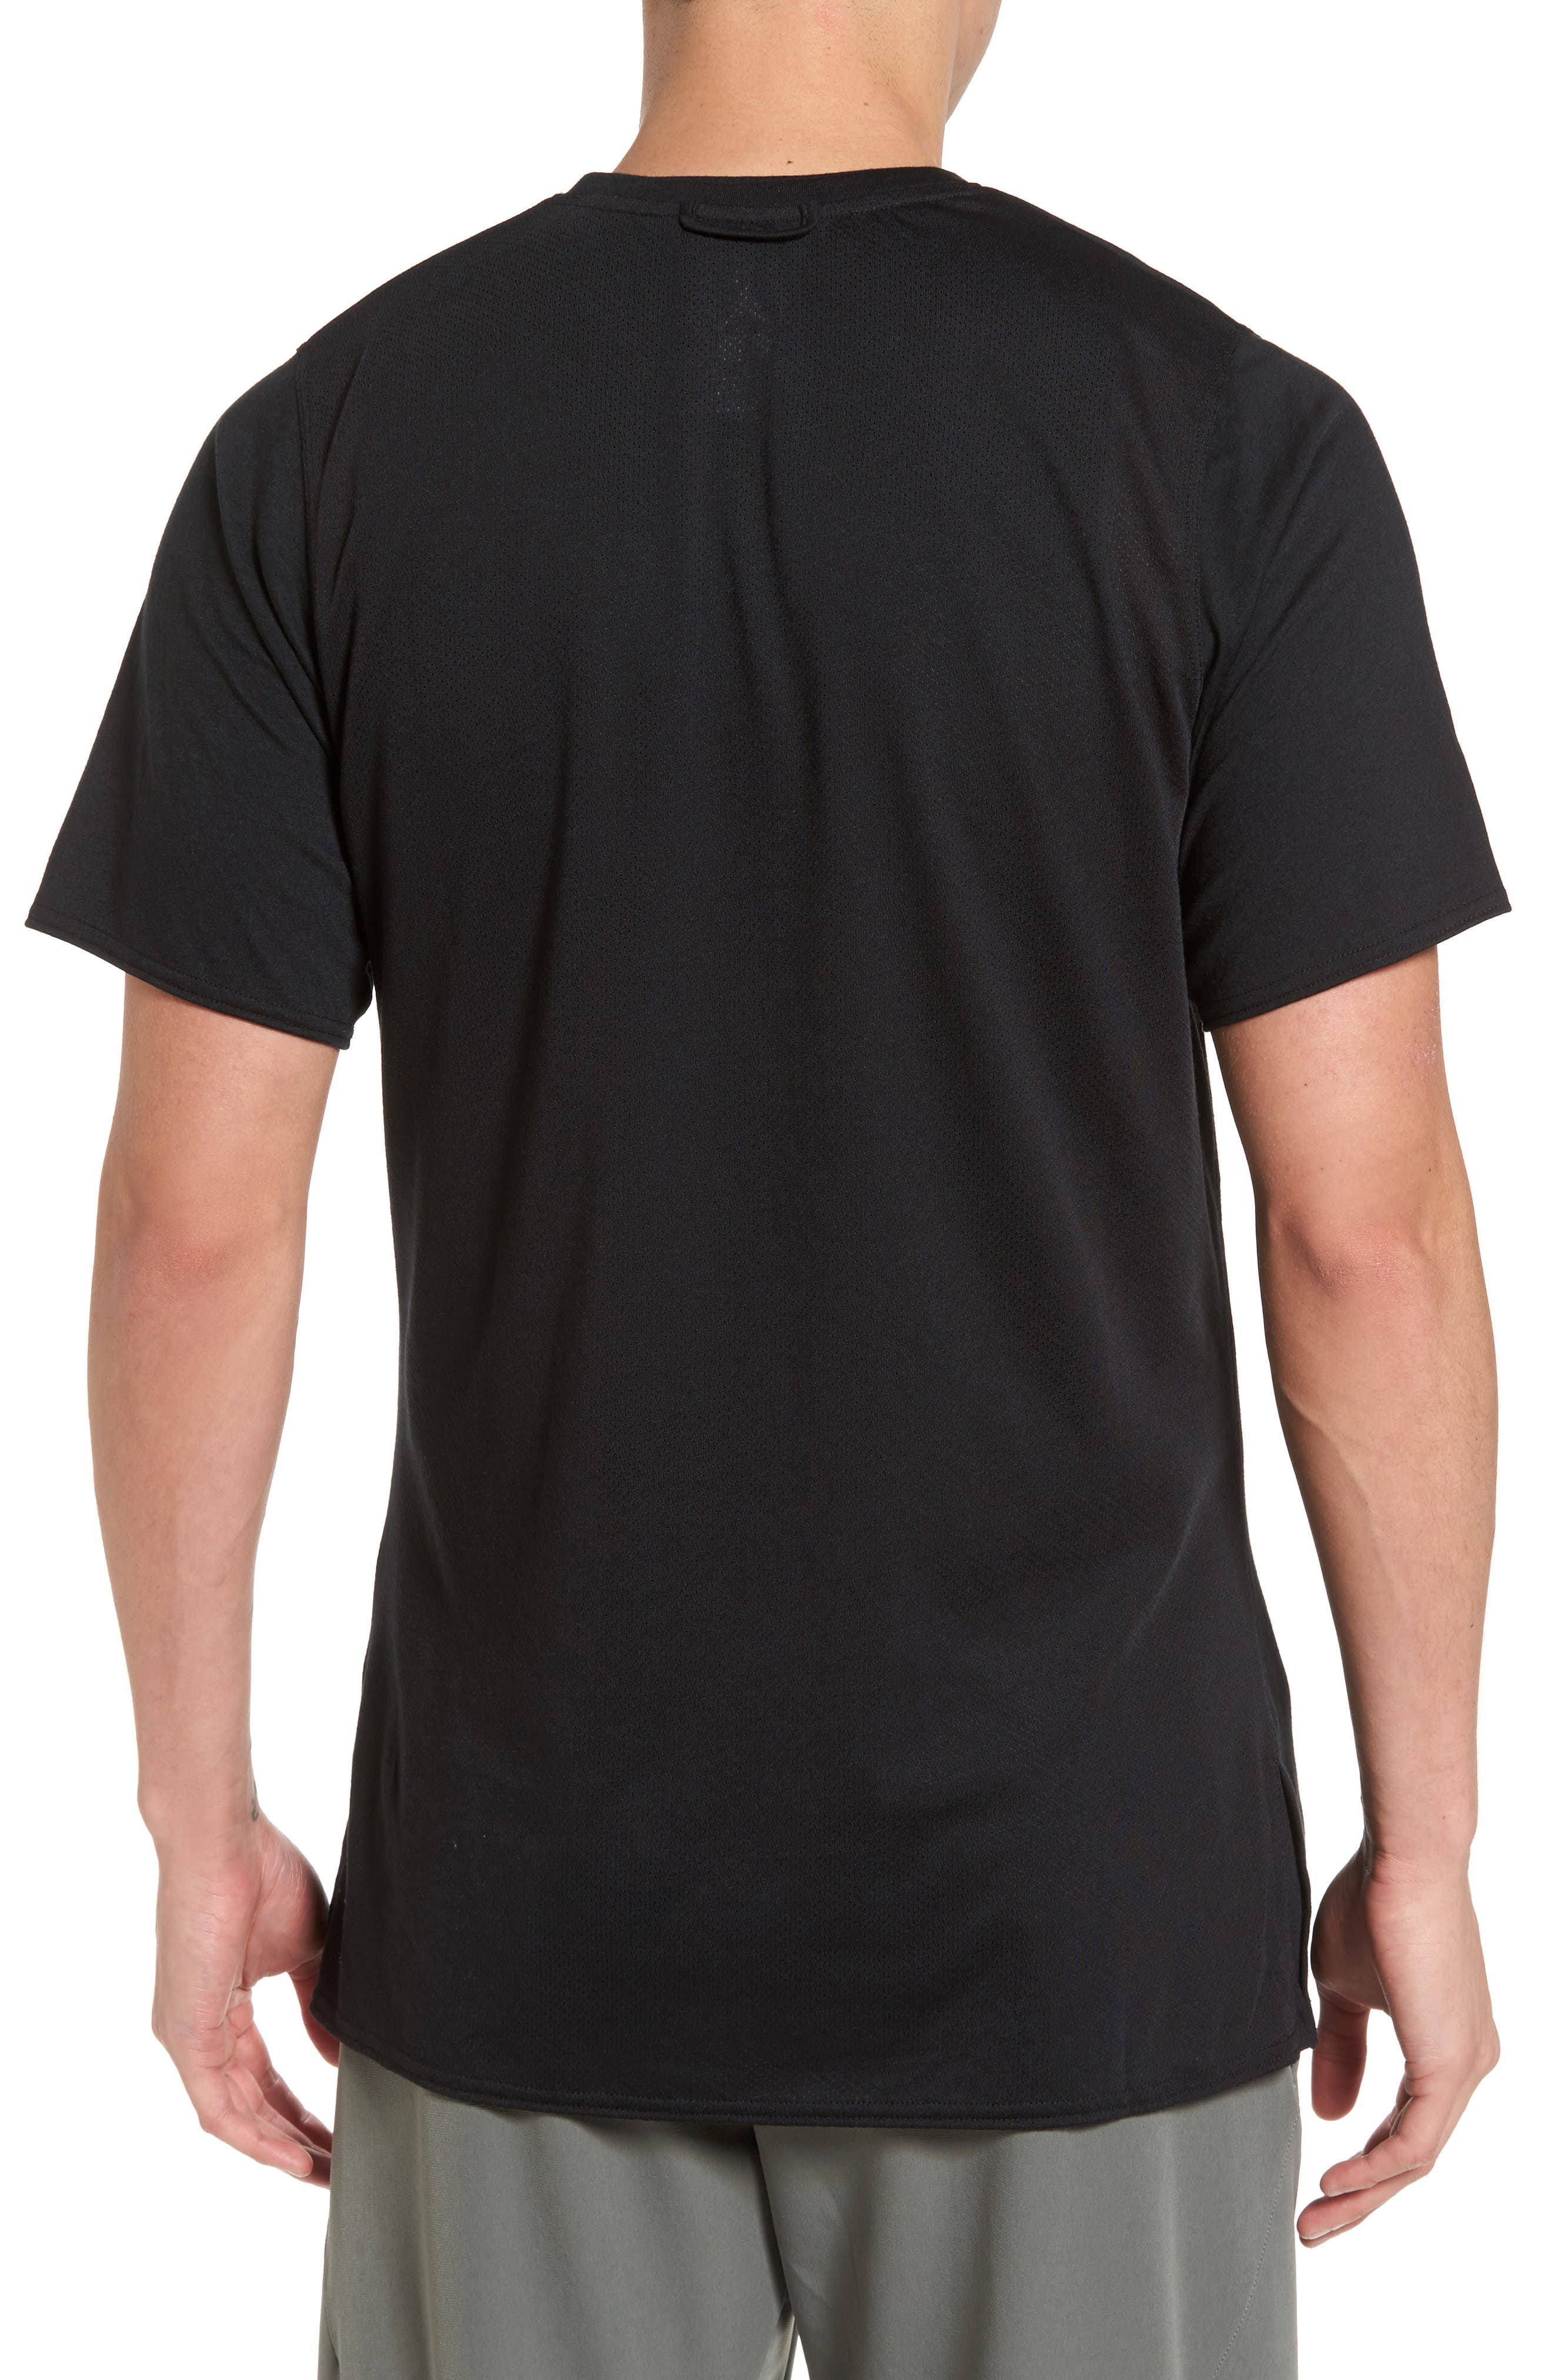 23 Alpha Dry T-Shirt,                             Alternate thumbnail 2, color,                             Black/ Anthracite